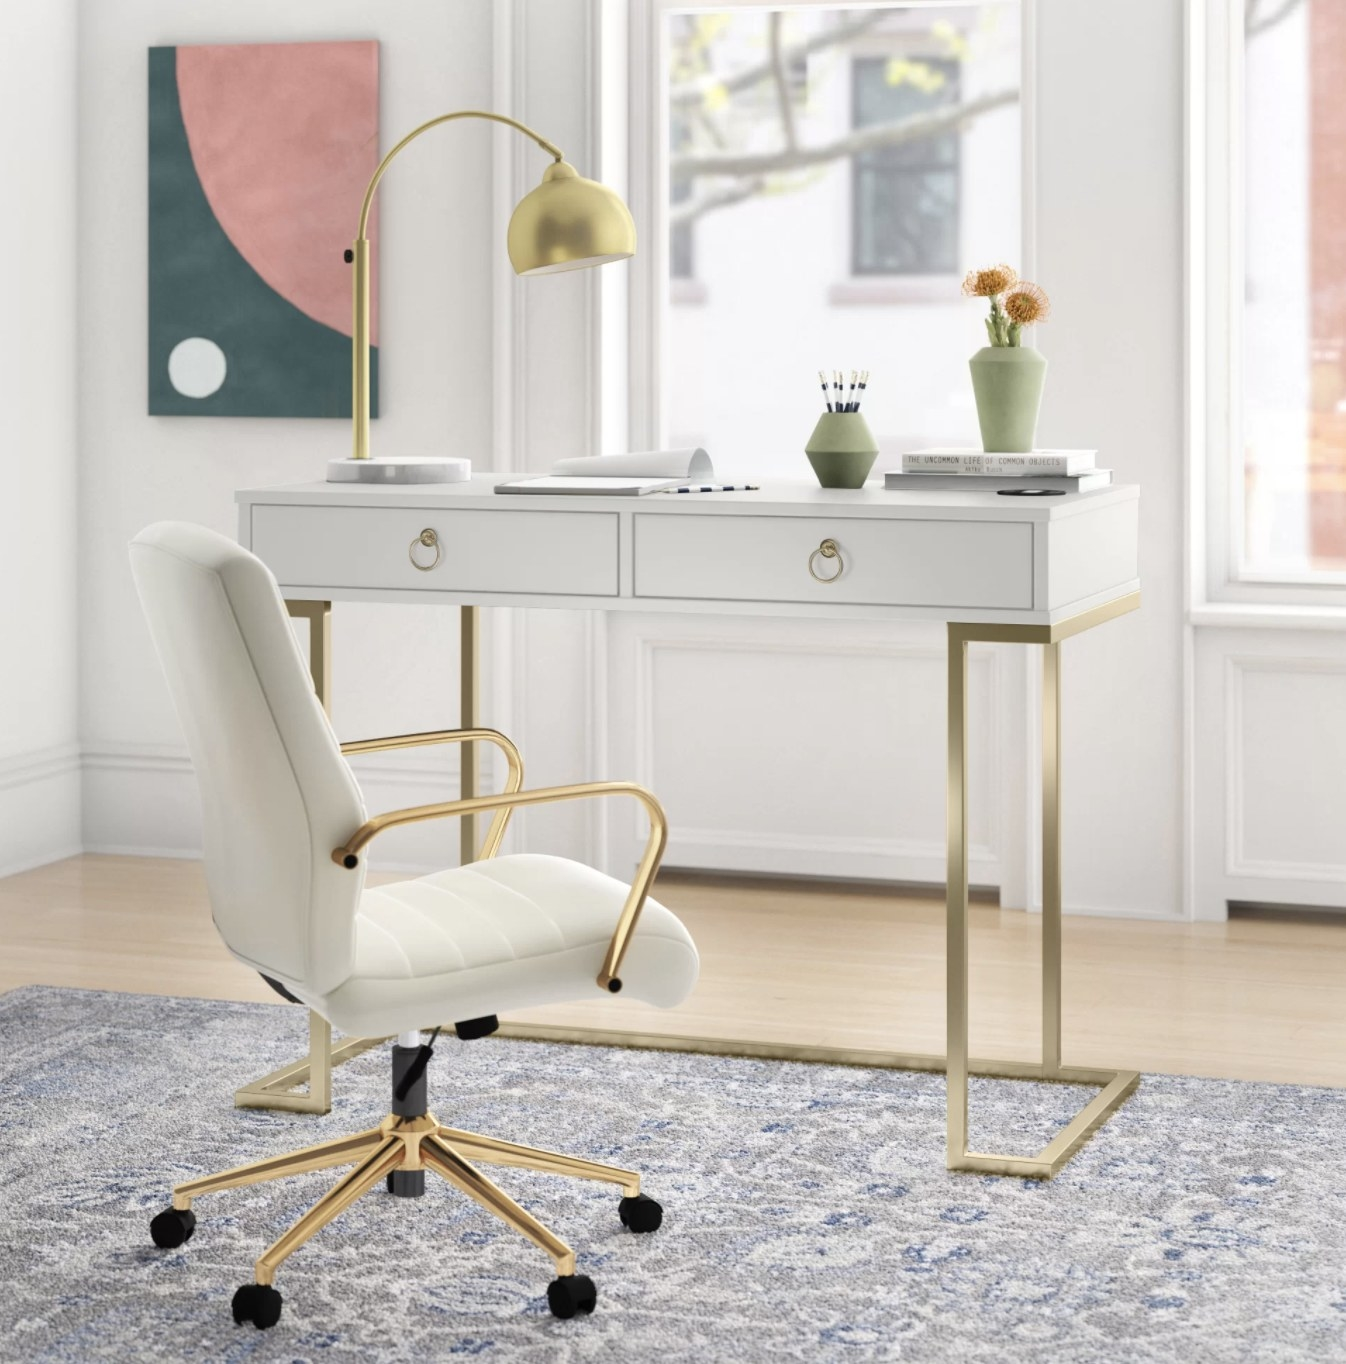 the desk in white with gold accents